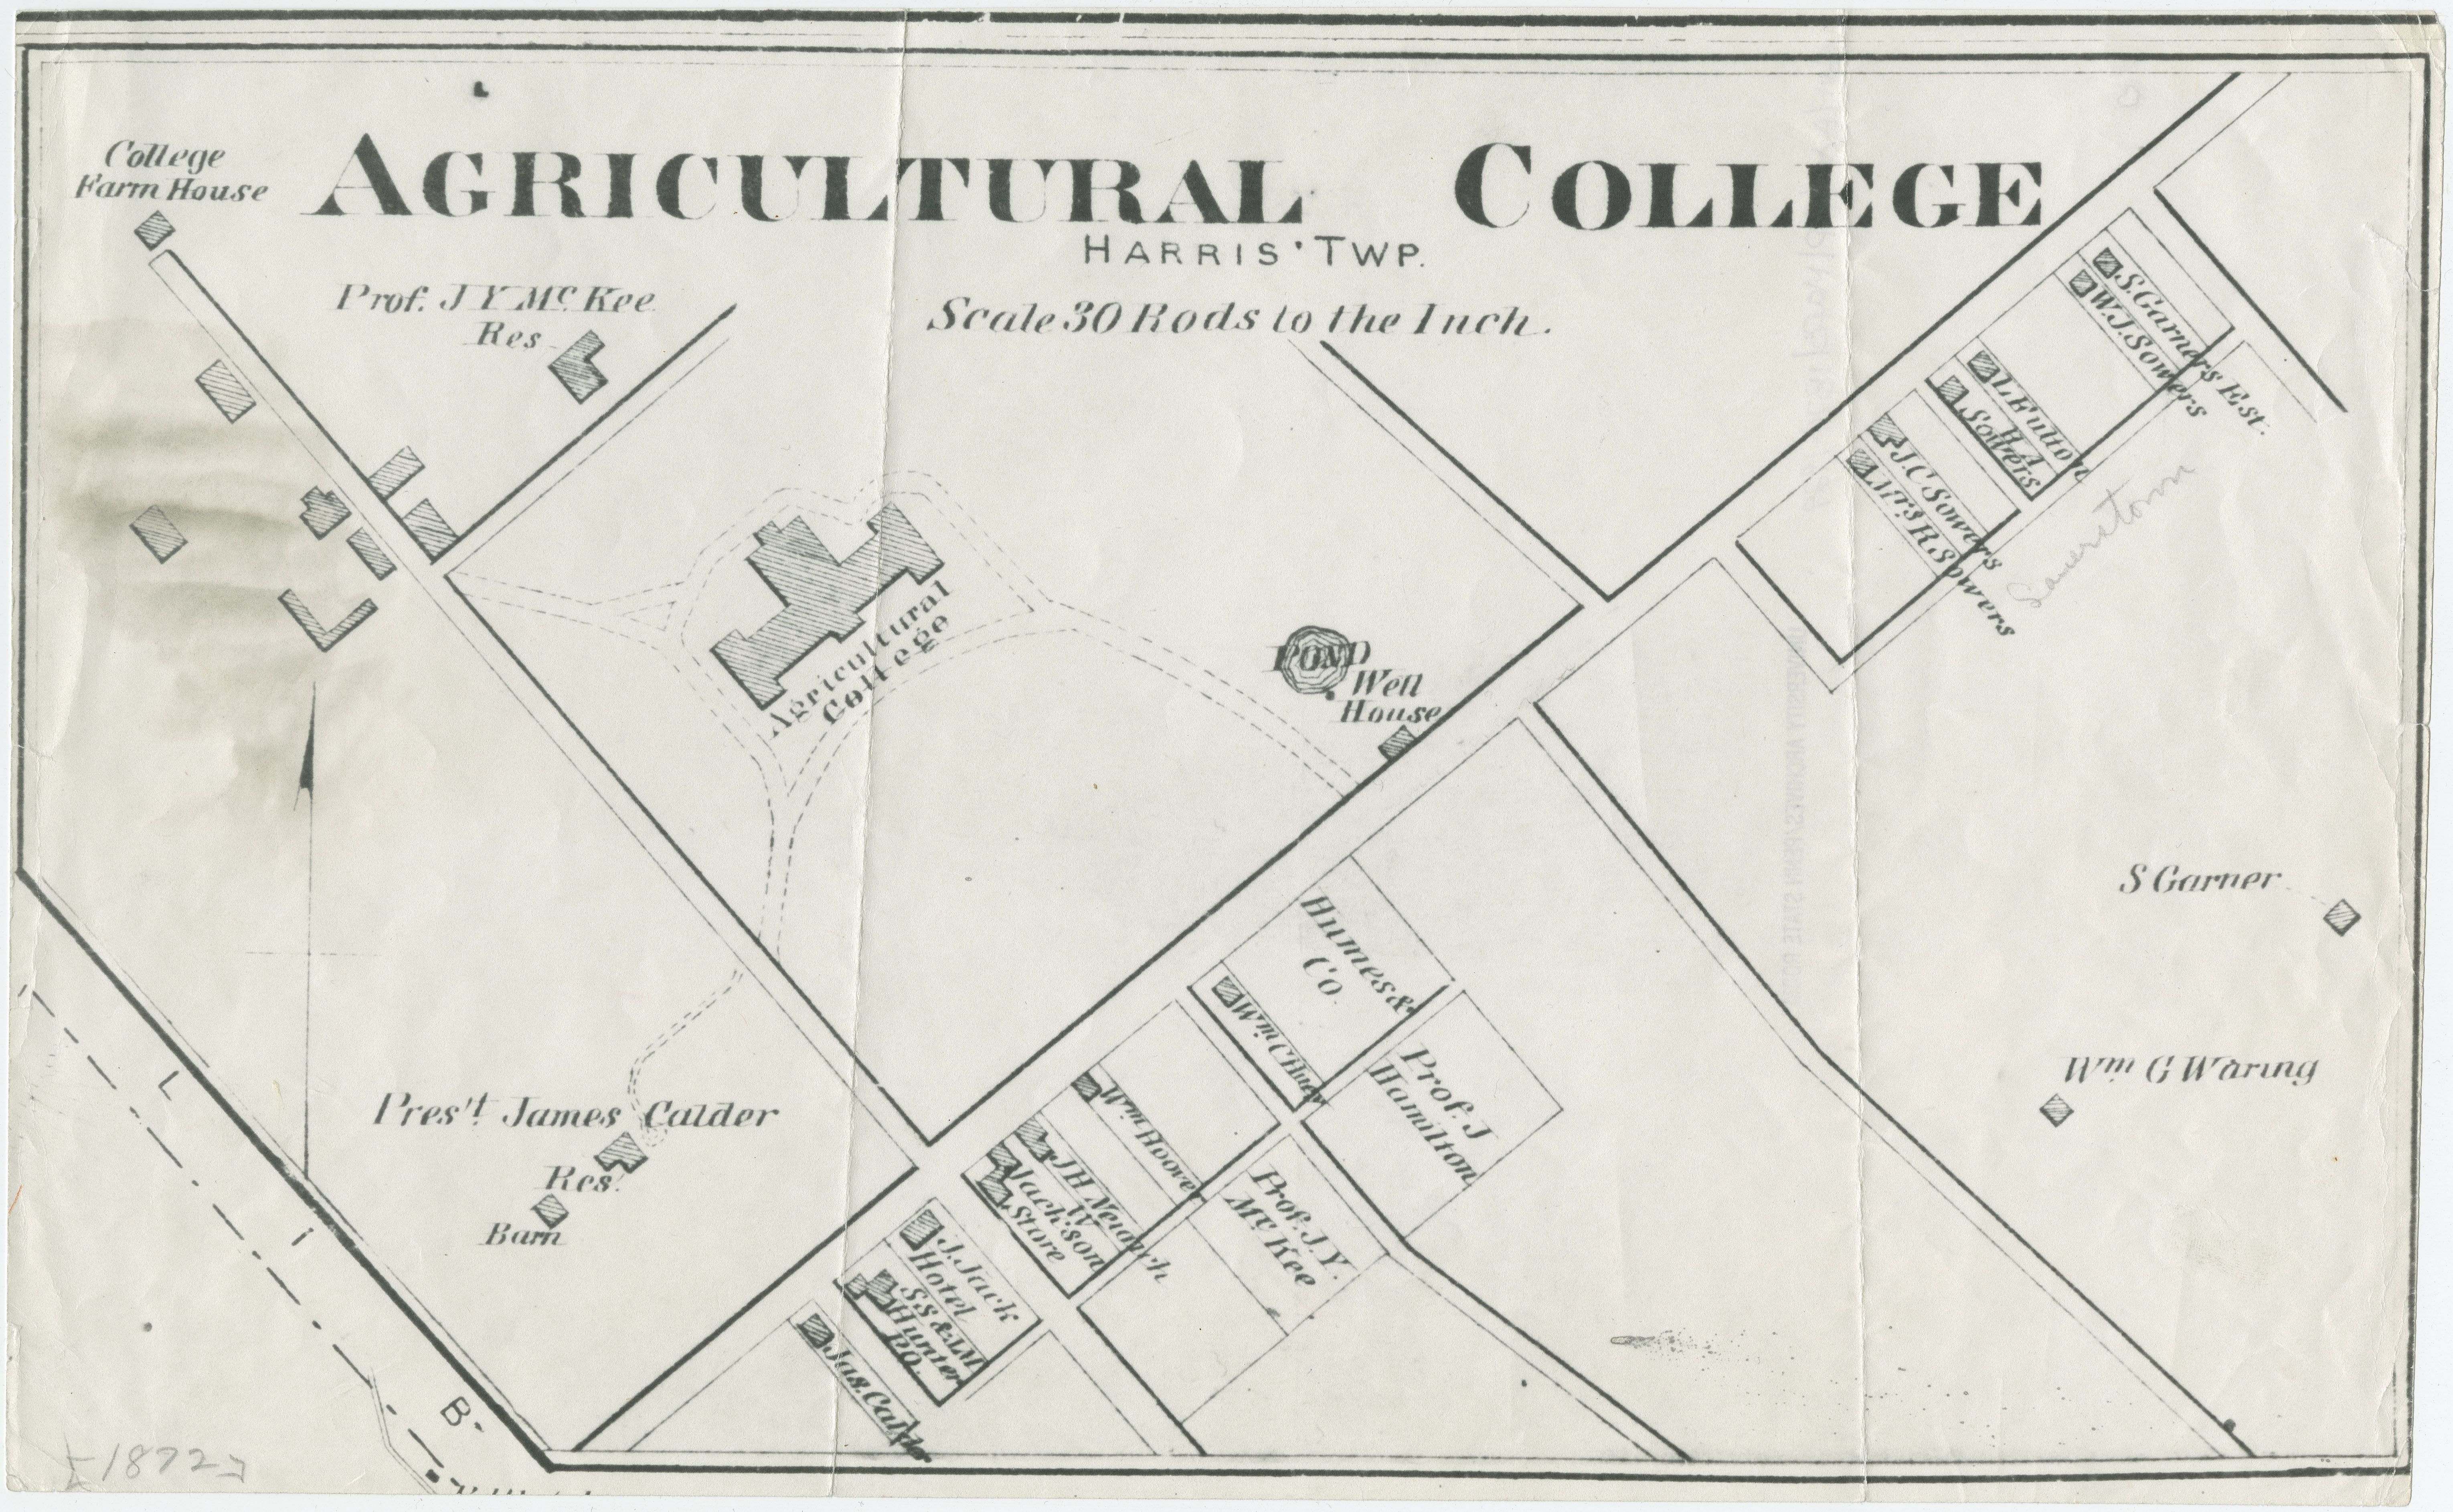 1874 PSU UP campus map